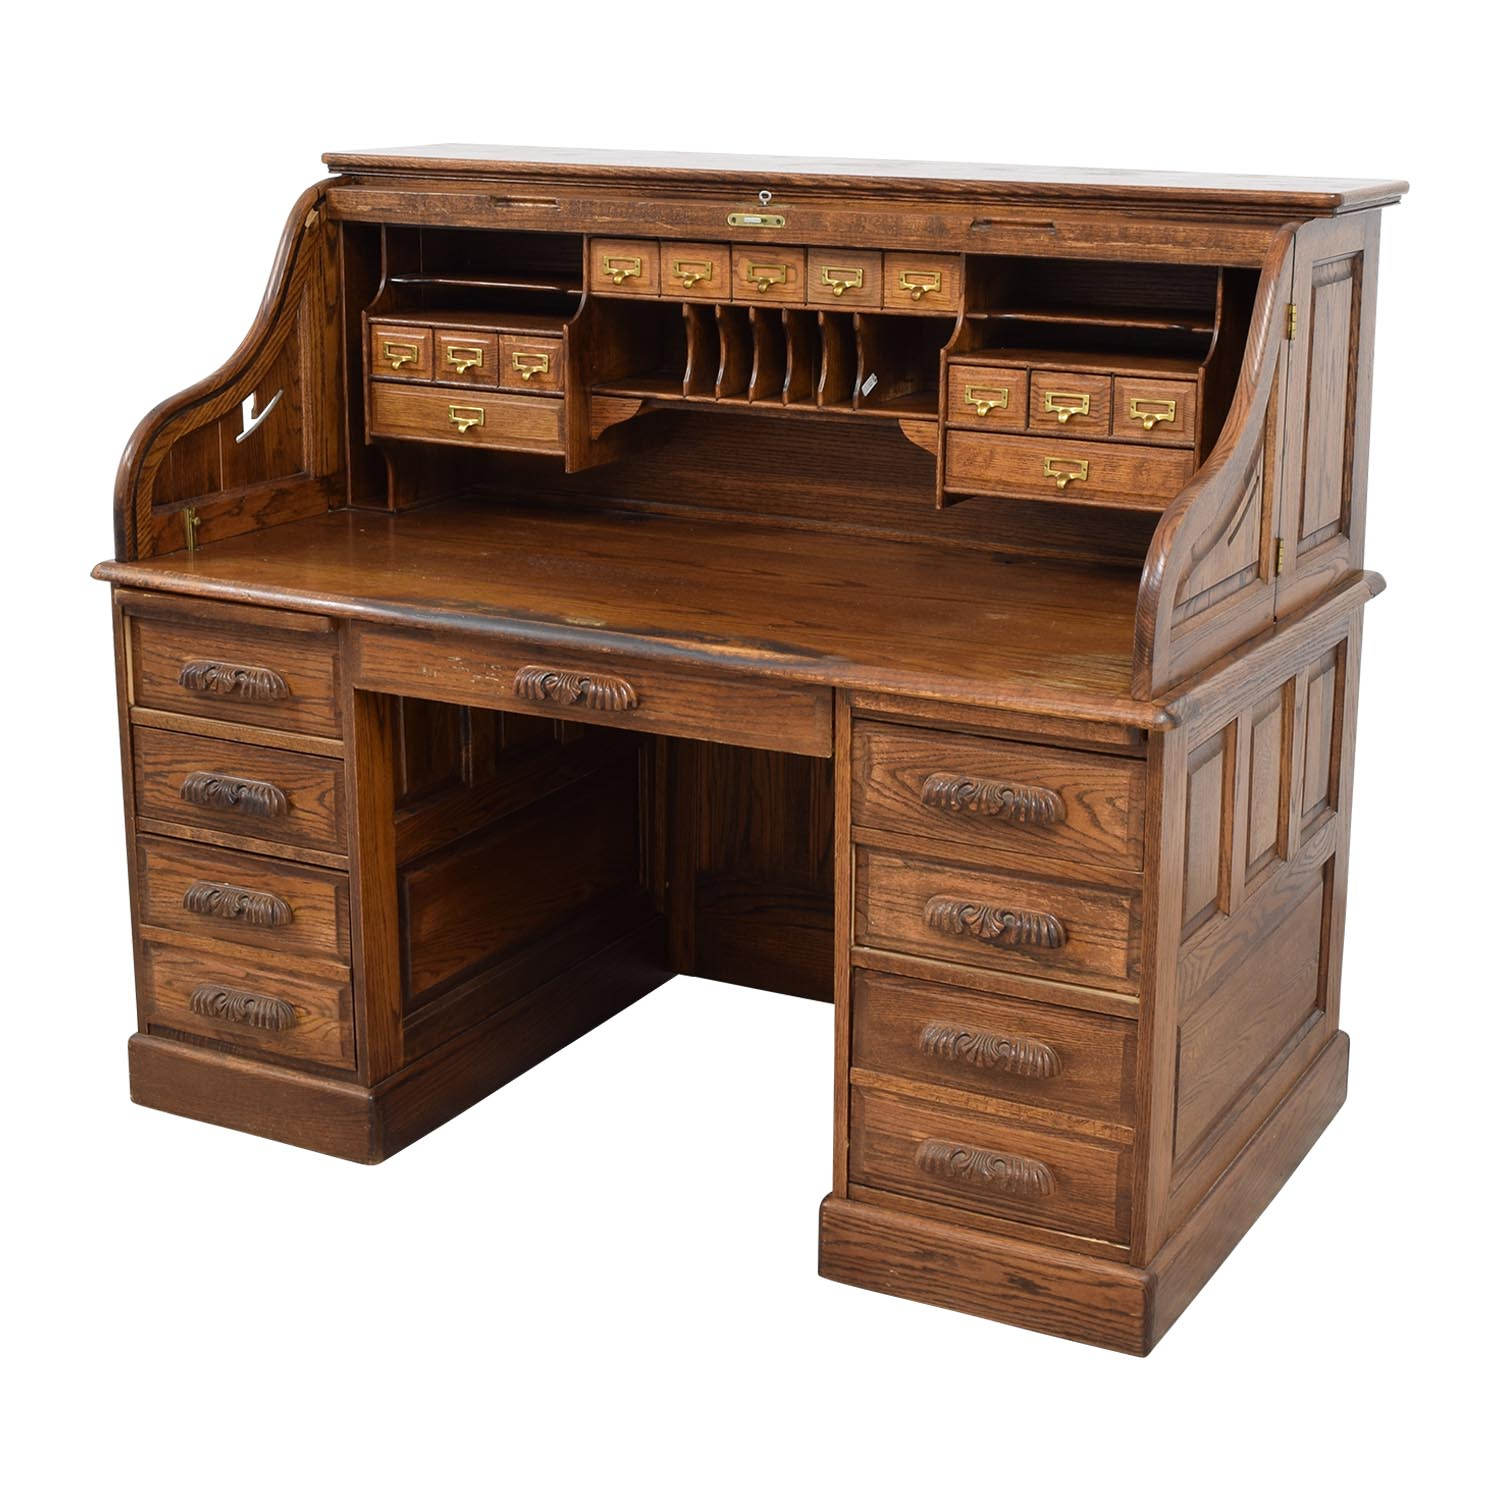 Outstanding 84 Off Antique Oak Roll Top Desk Tables Download Free Architecture Designs Embacsunscenecom